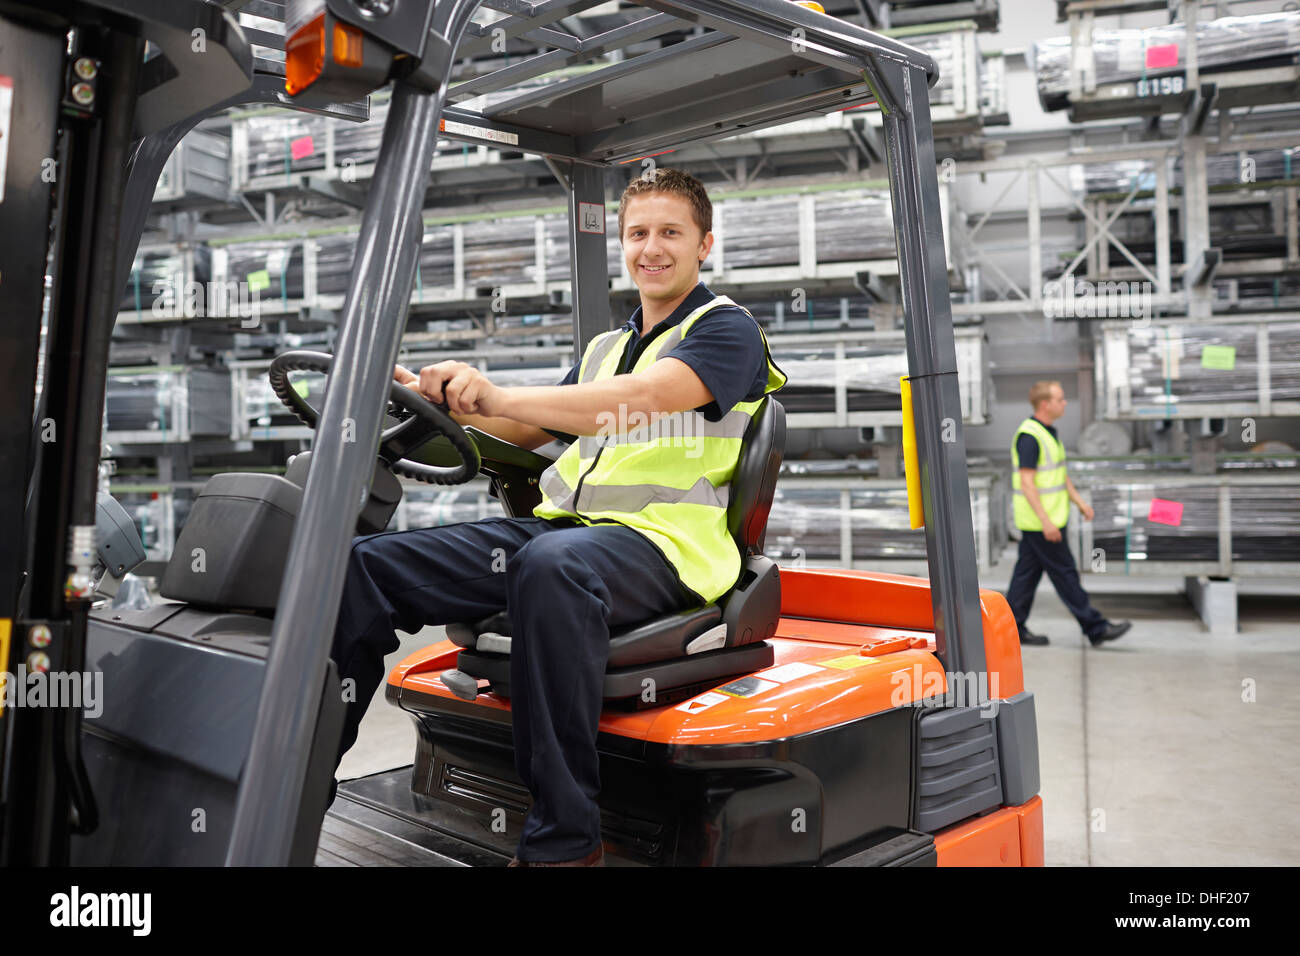 Forklift truck driver in engineering warehouse - Stock Image